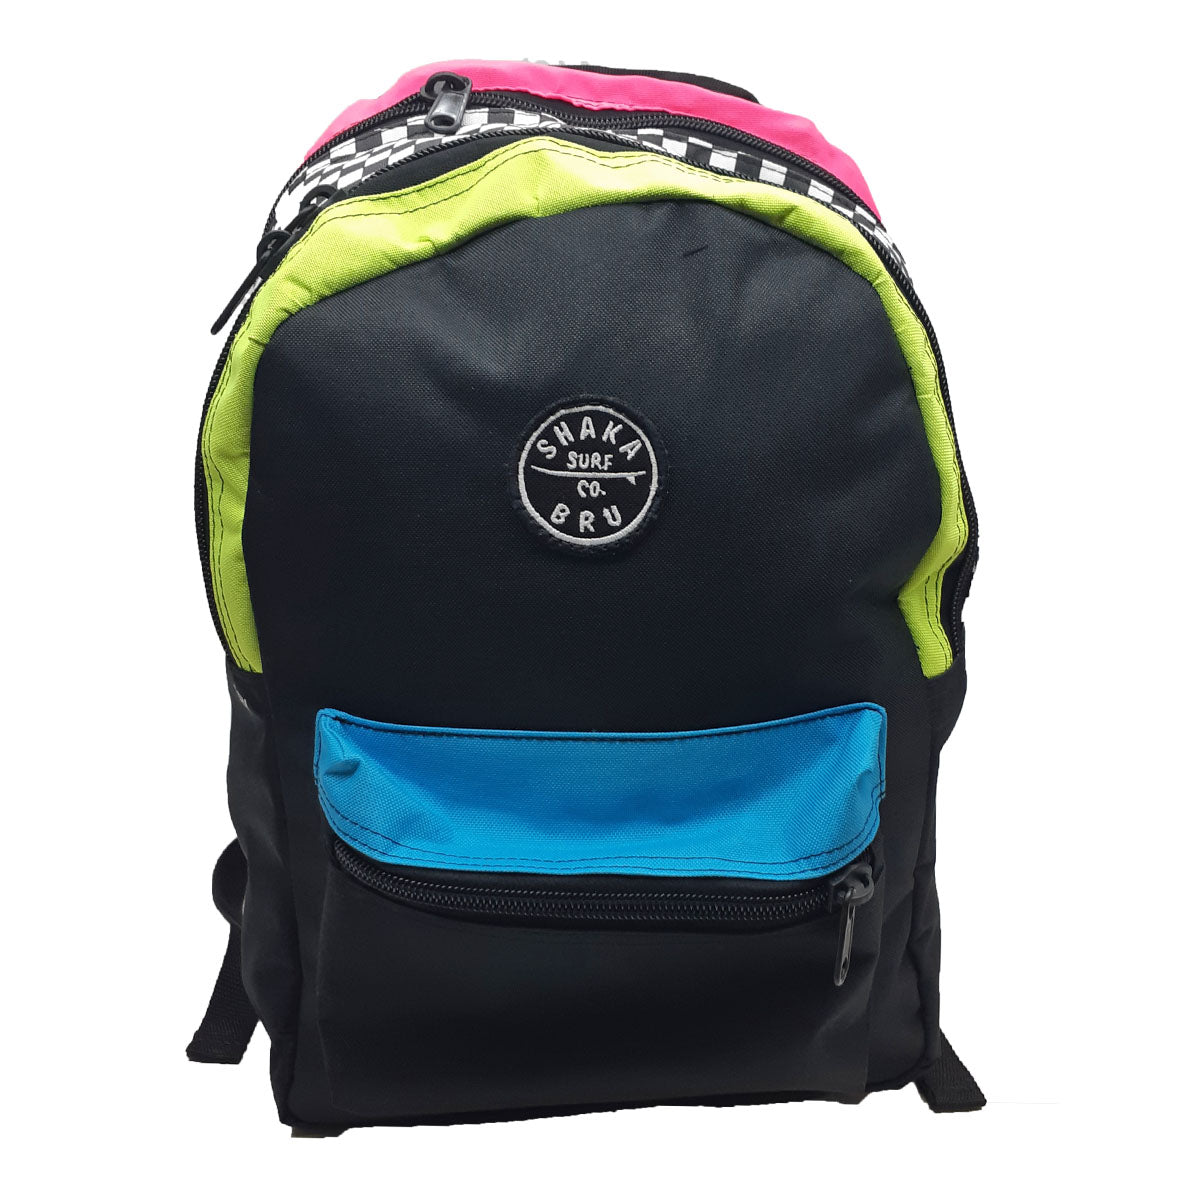 Shaka Bru Neon Pop Wet & Dry Back Pack - 25 litres